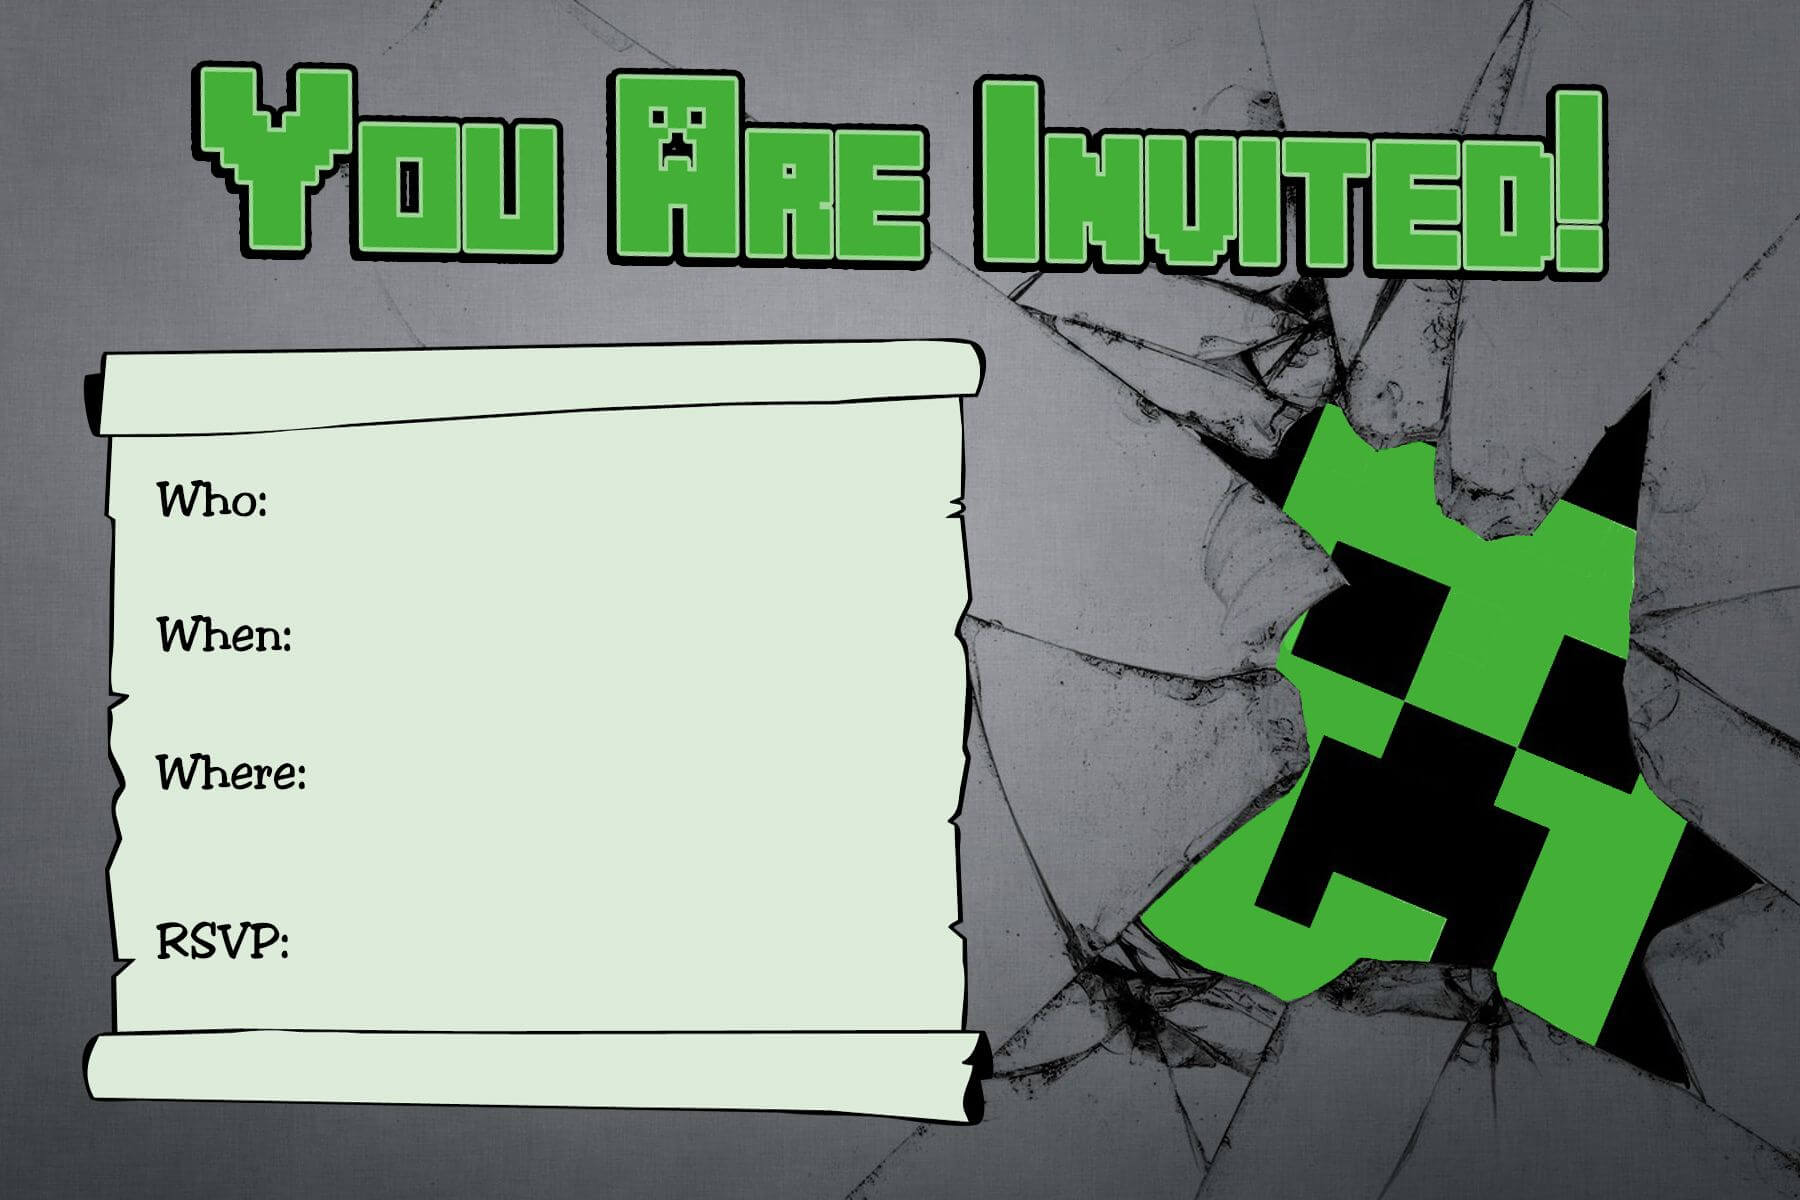 Free Minecraft Creeper Inspired Birthday Invitation intended for Minecraft Birthday Card Template